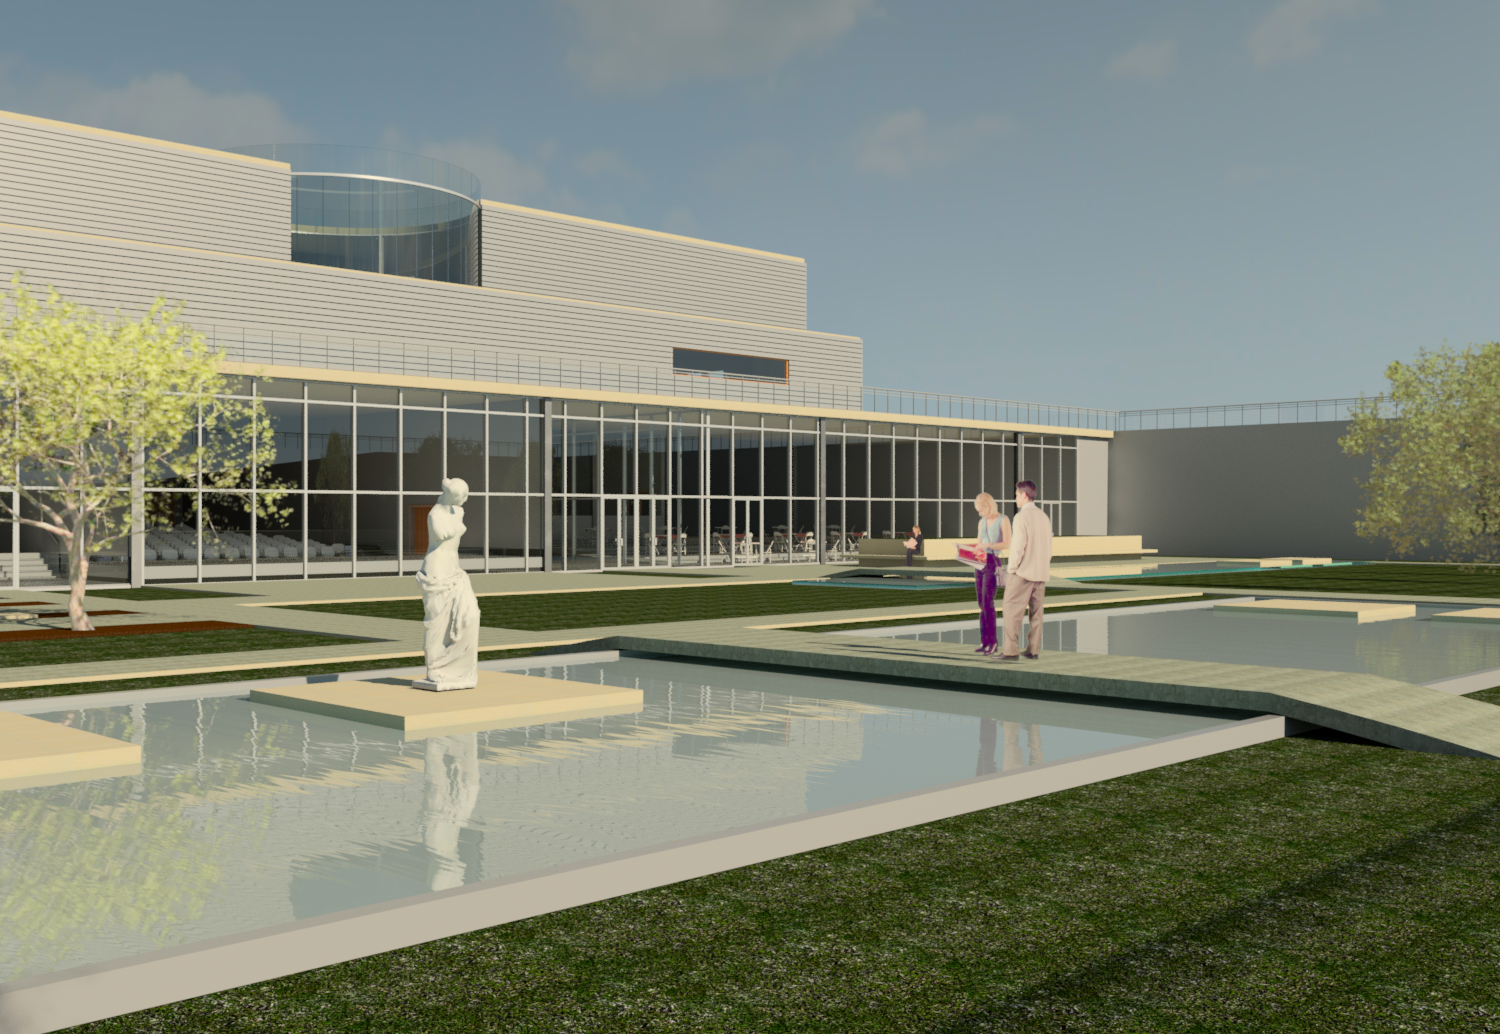 Rendering of the Lowered Sculpture Garden as an Extension of the Museum